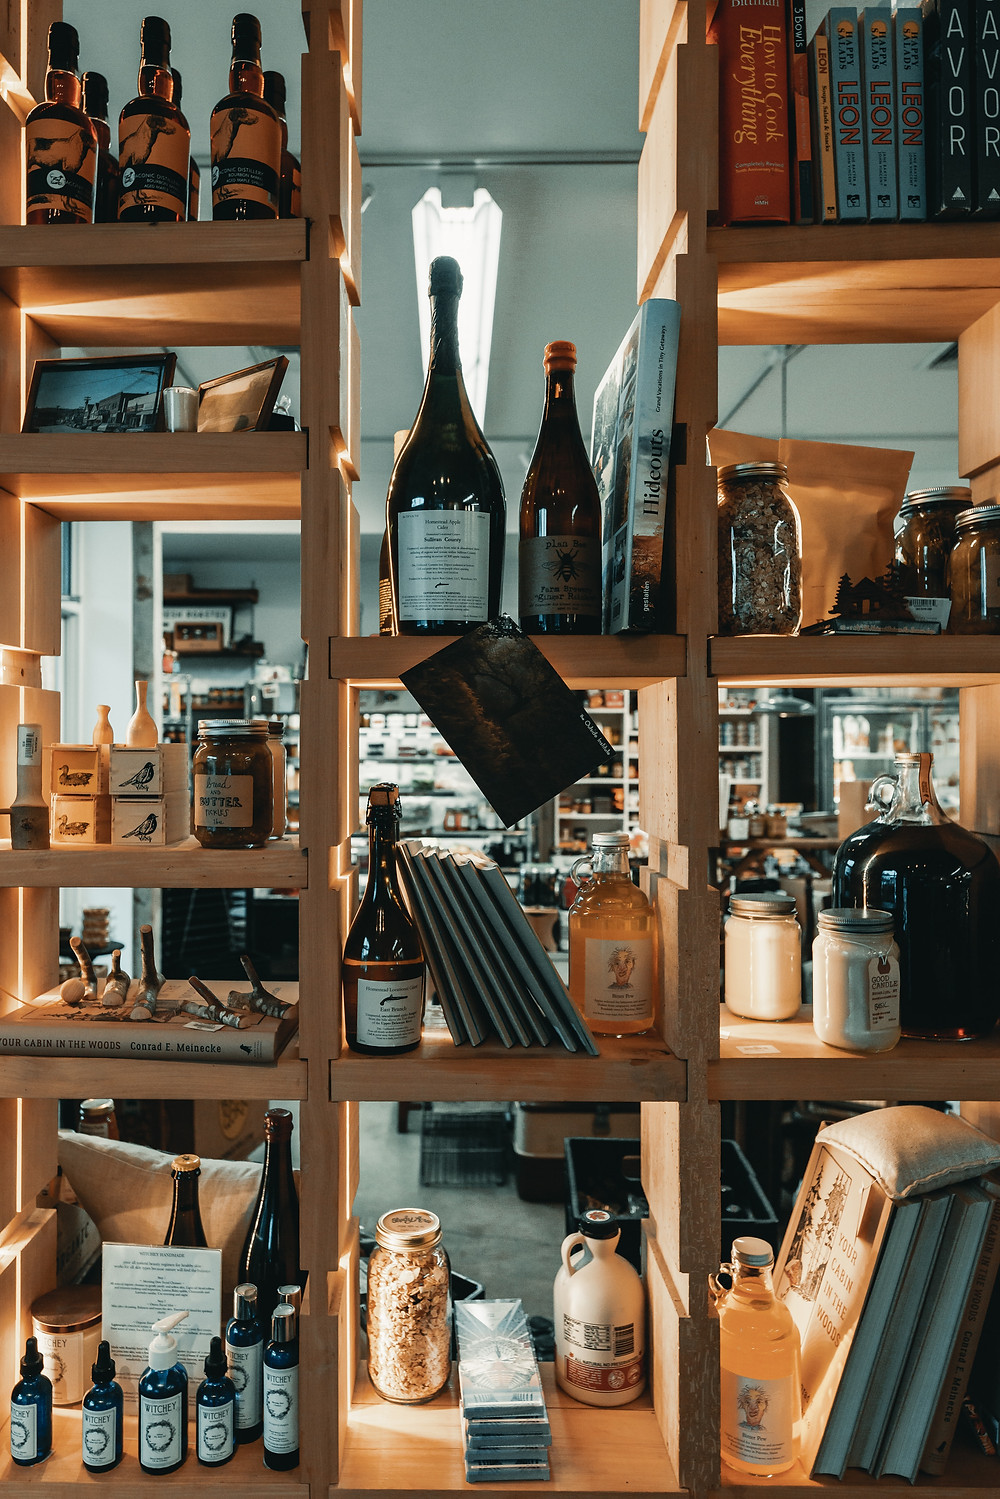 Backless Wooden Shelfs in a Retail Store with Interesting Bottles, Books and Pictures for sale